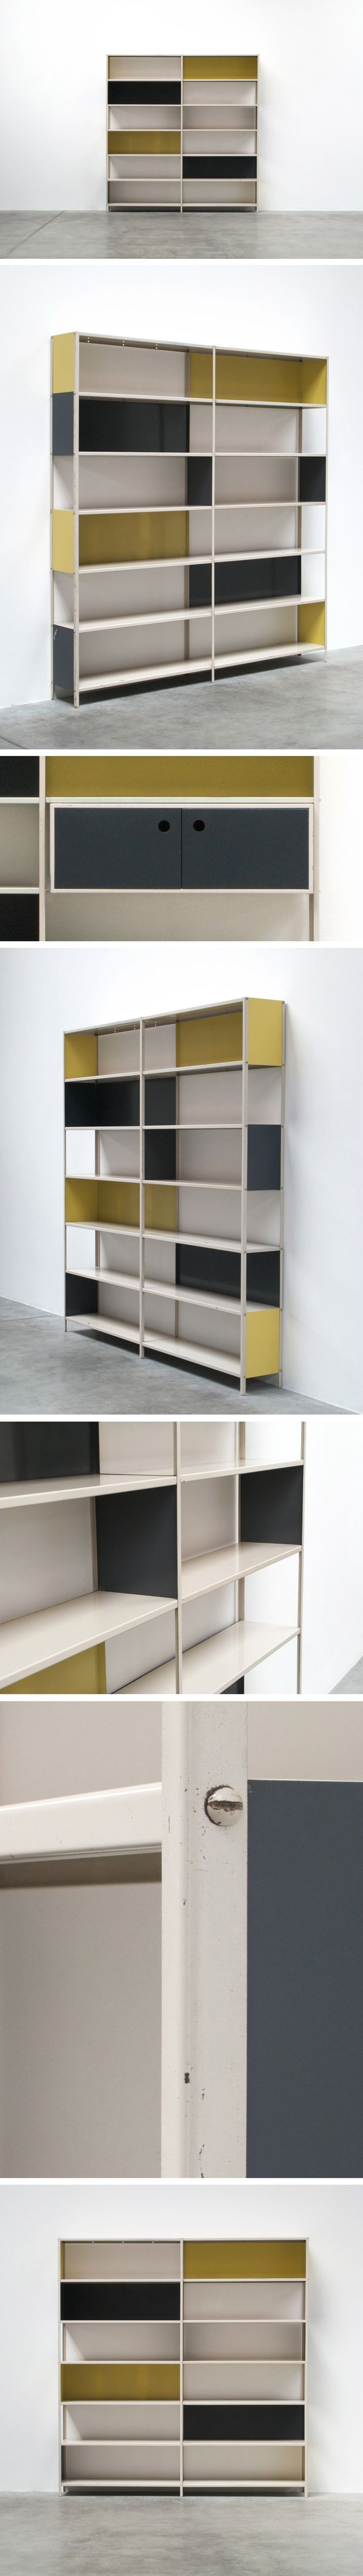 1000 ideas about wall shelving units on pinterest. Black Bedroom Furniture Sets. Home Design Ideas